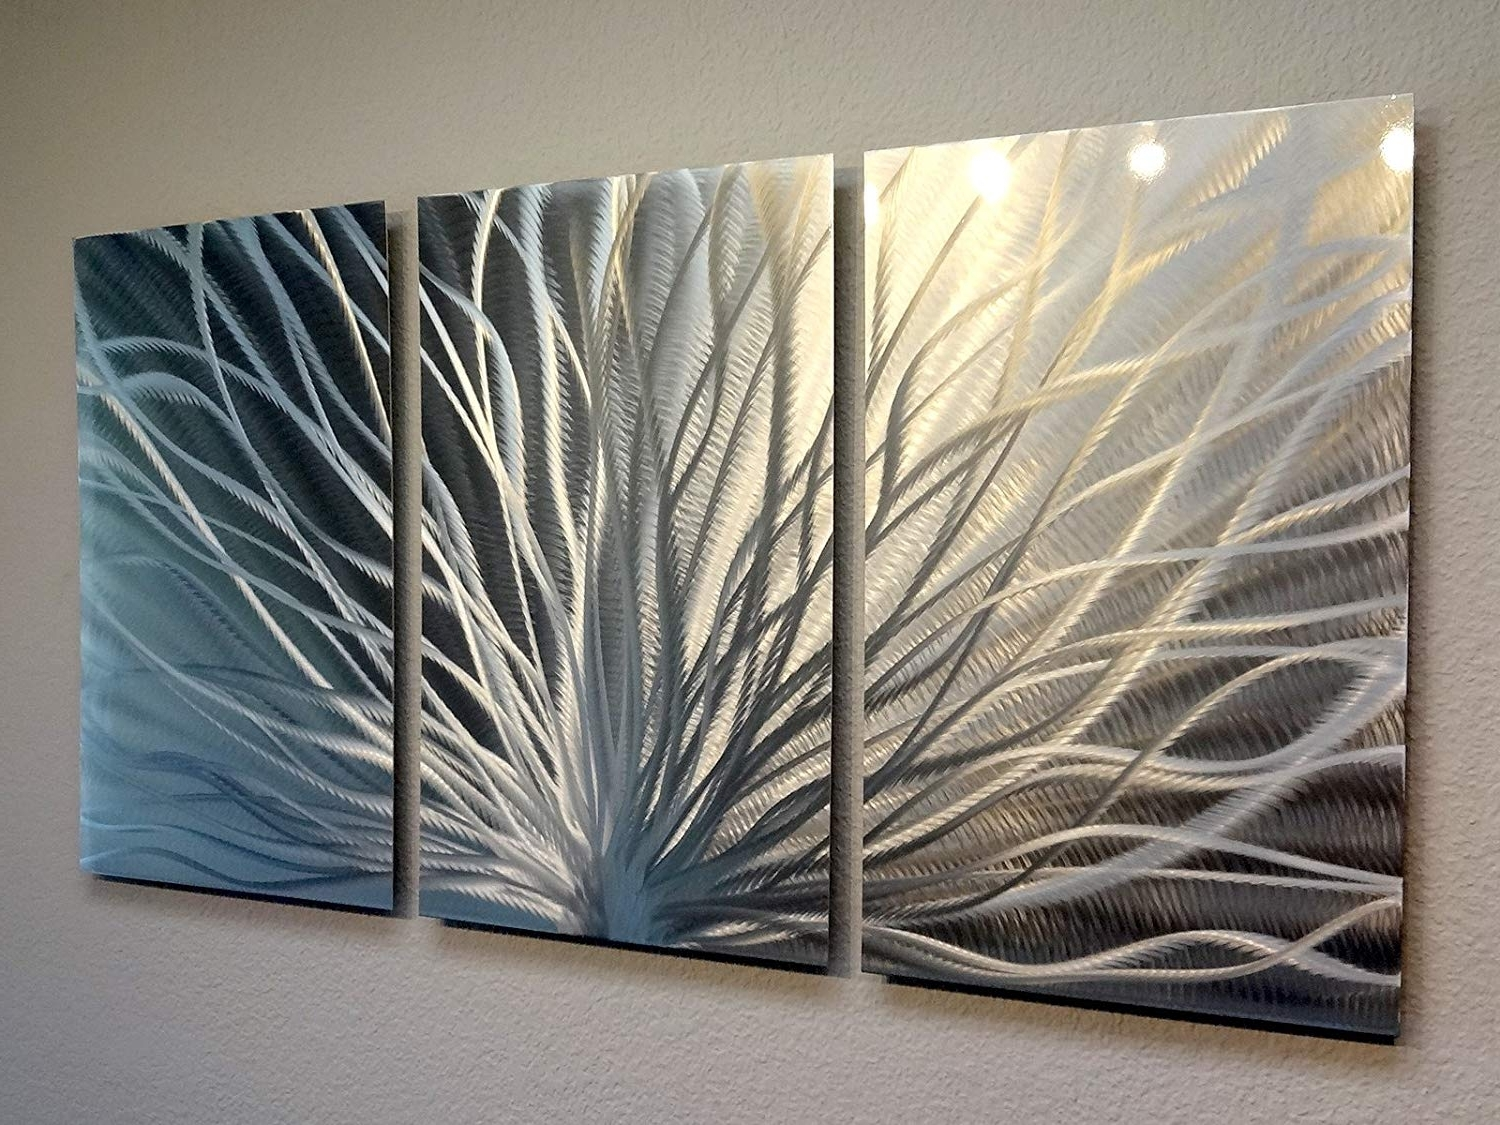 Amazon: Miles Shay Metal Wall Art, Modern Home Decor, Abstract Pertaining To Most Recently Released Wall Art (View 1 of 15)